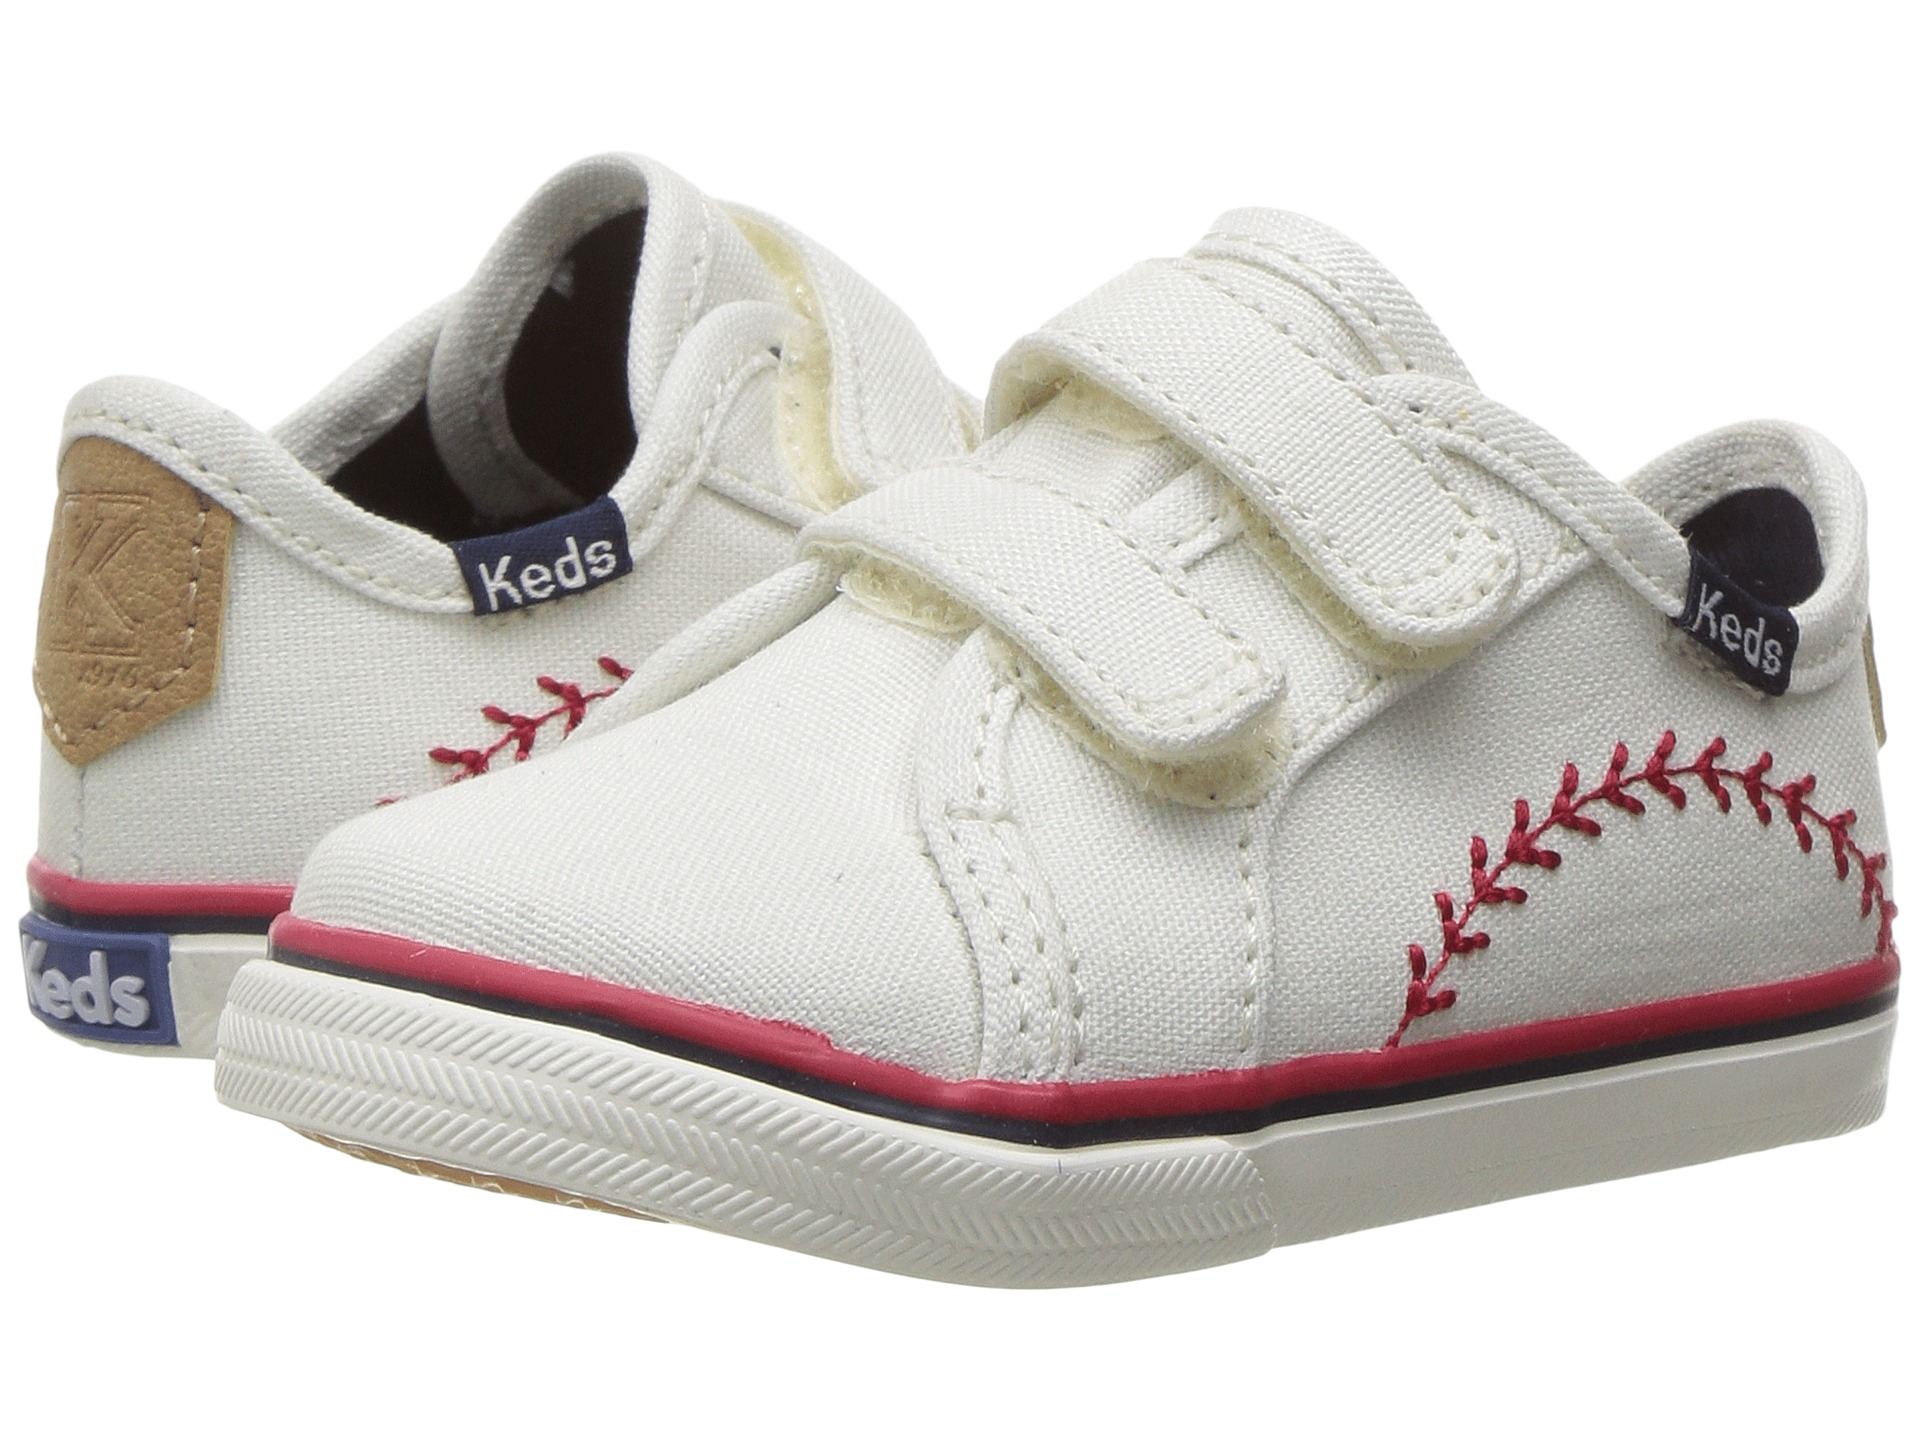 Keds has lace up leather shoes and slip on sneakers that come in a colorful collection ready for any style or occasion. Whether you are looking for our Champion Original canvas sneakers, or want to elevate your style with our leather shoes, Keds has the slip on sneakers you need to take you from day to night.